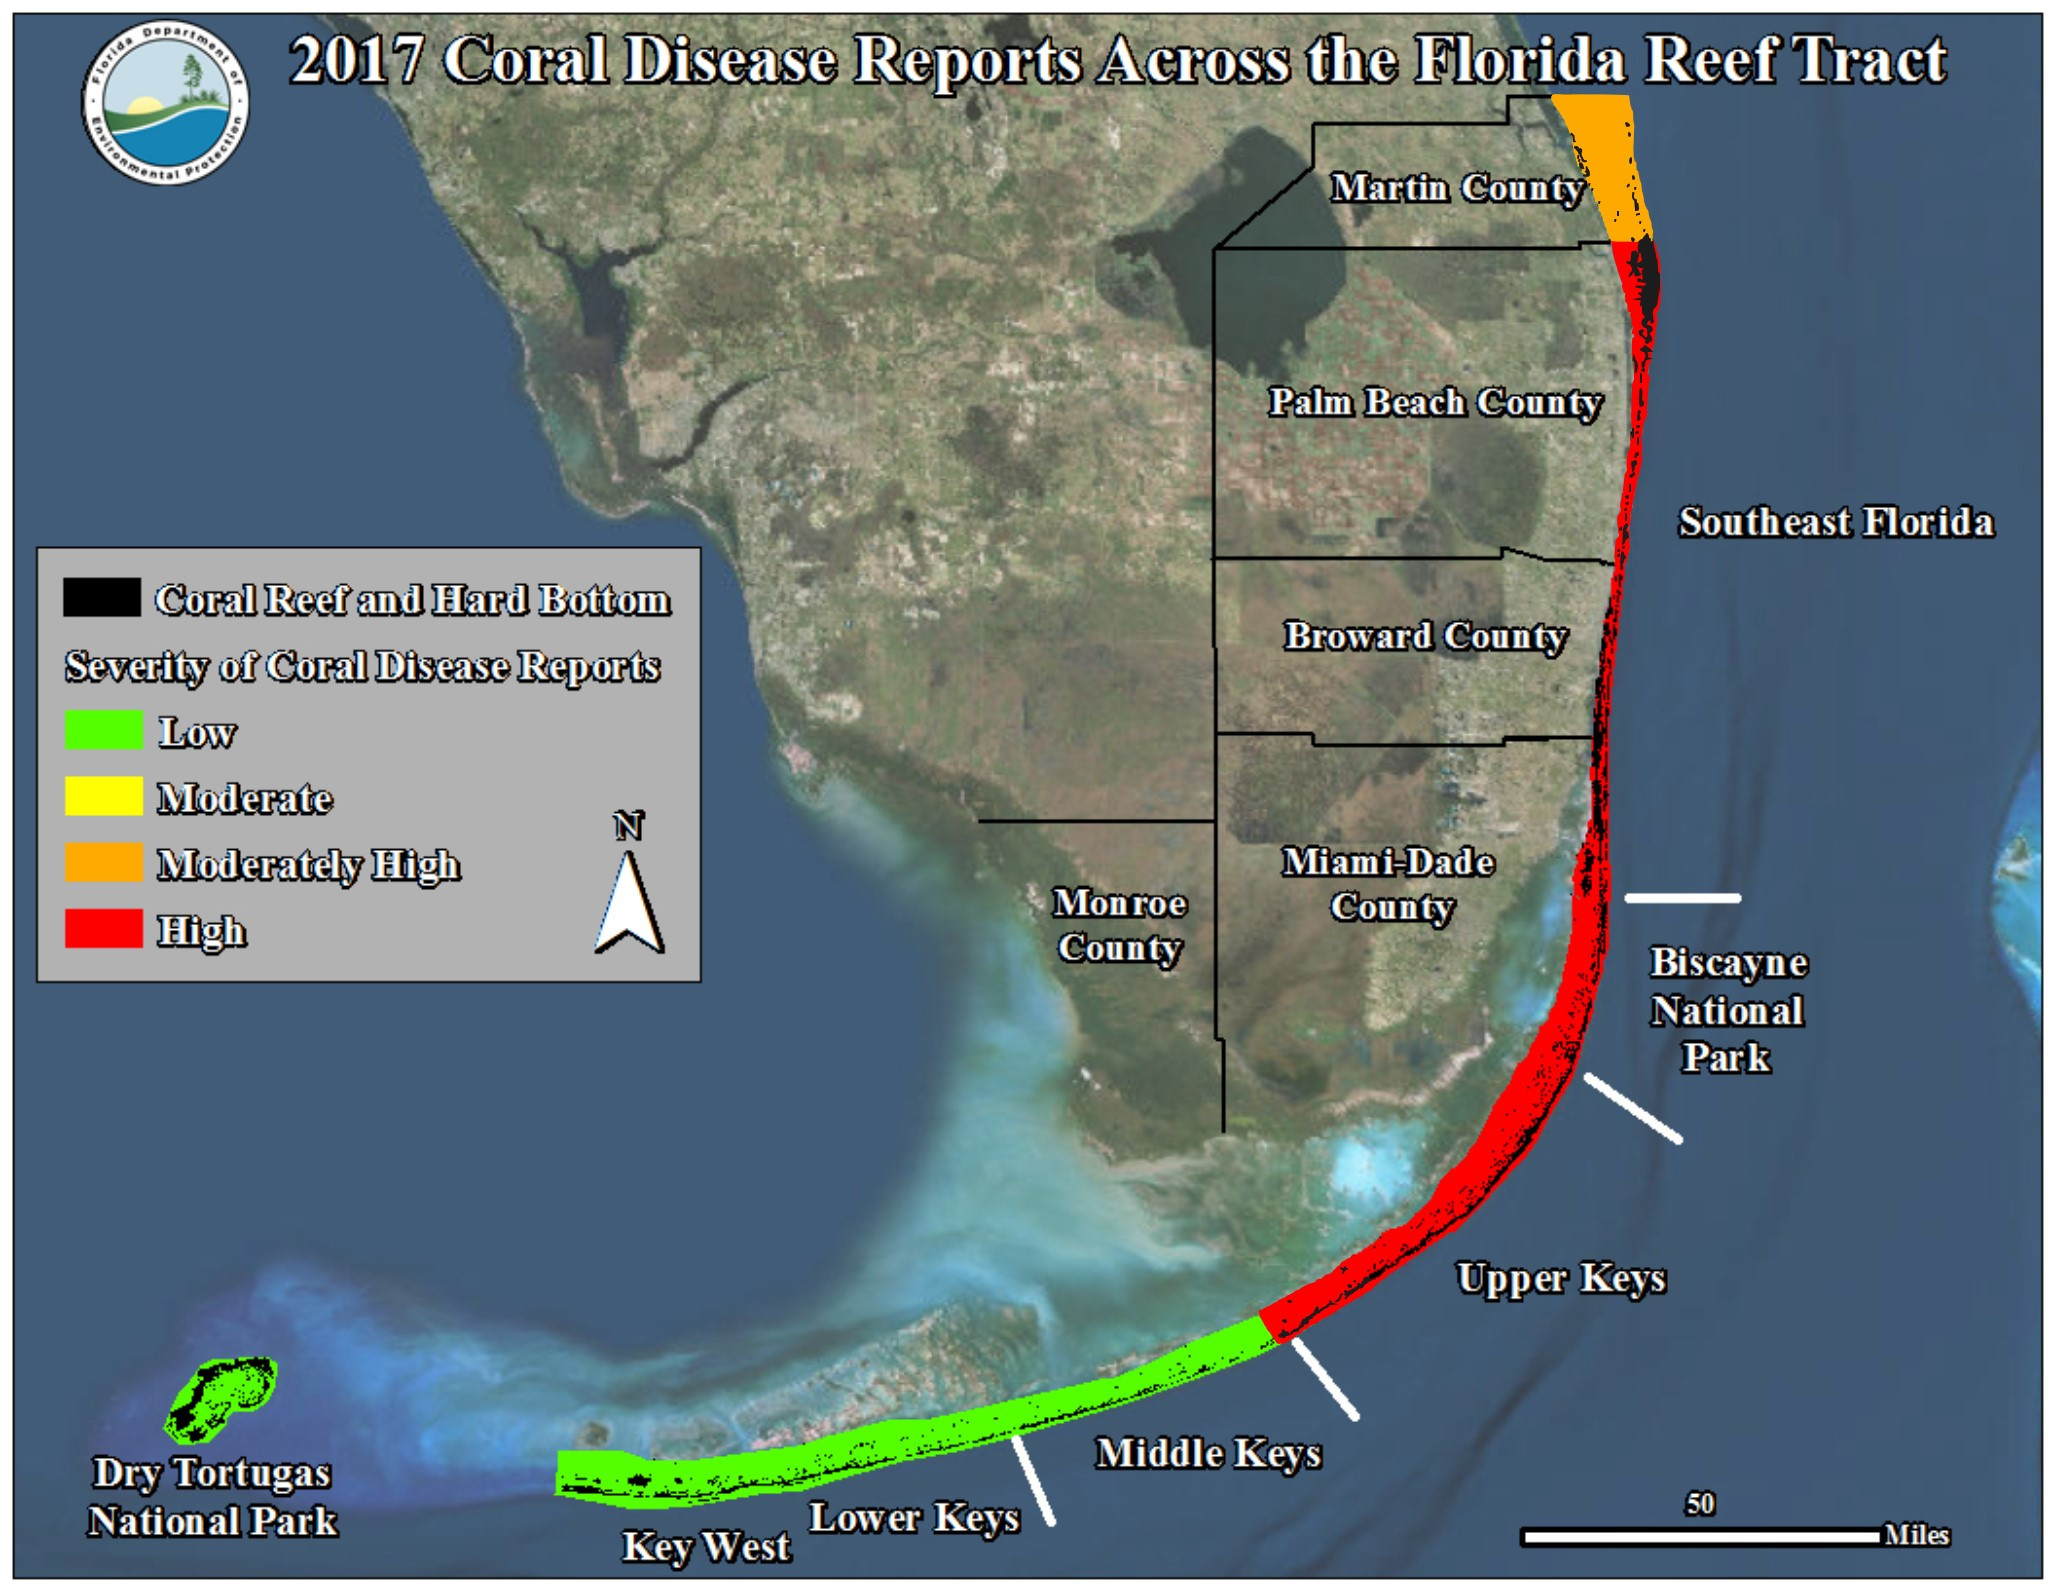 Florida Reef Map Fco Coral Reef Disease Map 2017 Updated V2 Kb 1 9 - Coral Reefs In Florida Map